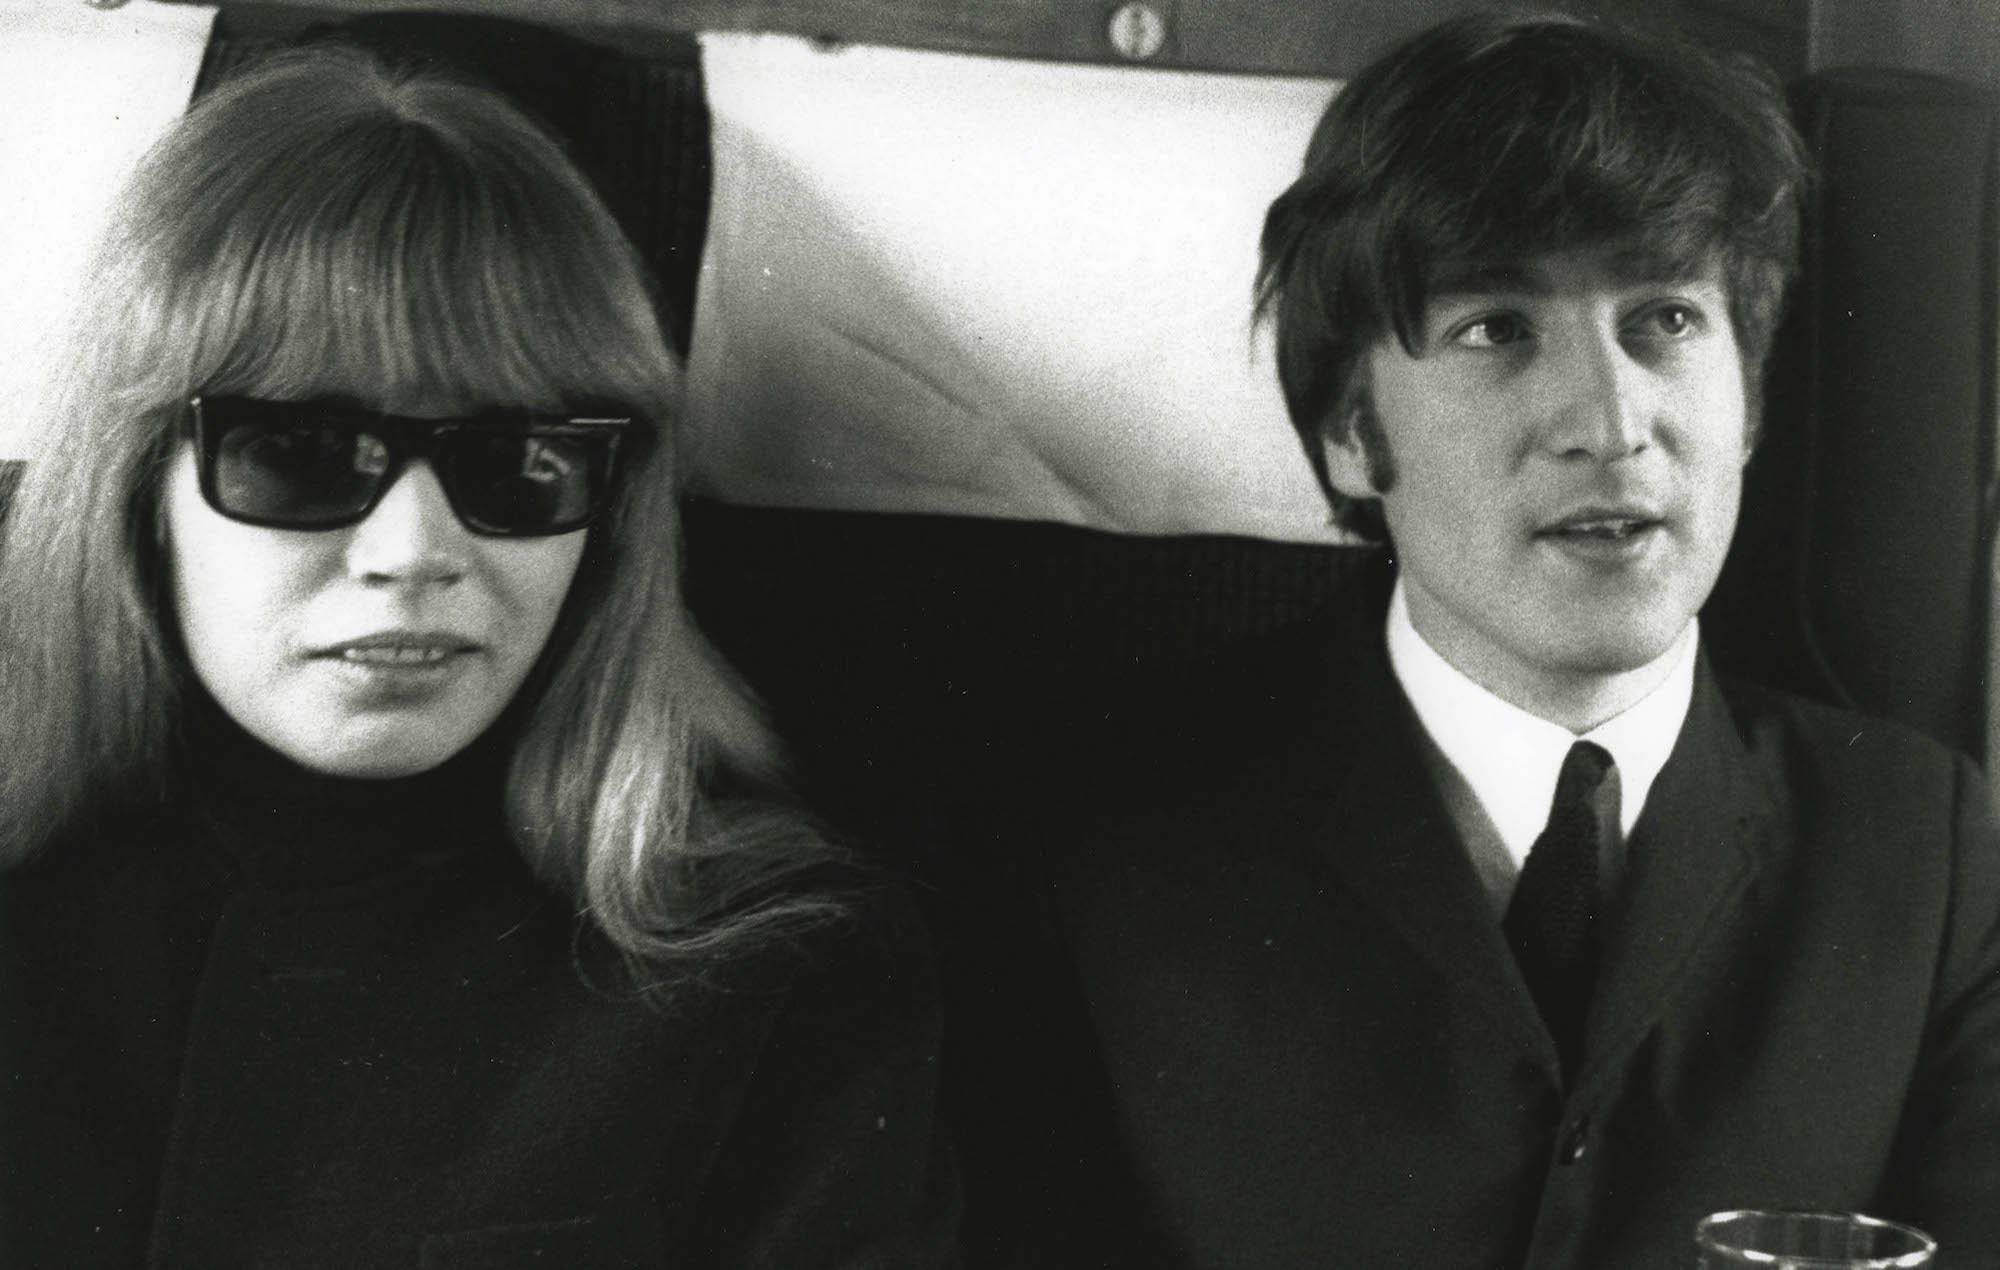 The Beatles' photographer and collaborator Astrid Kirchherr dies aged 81